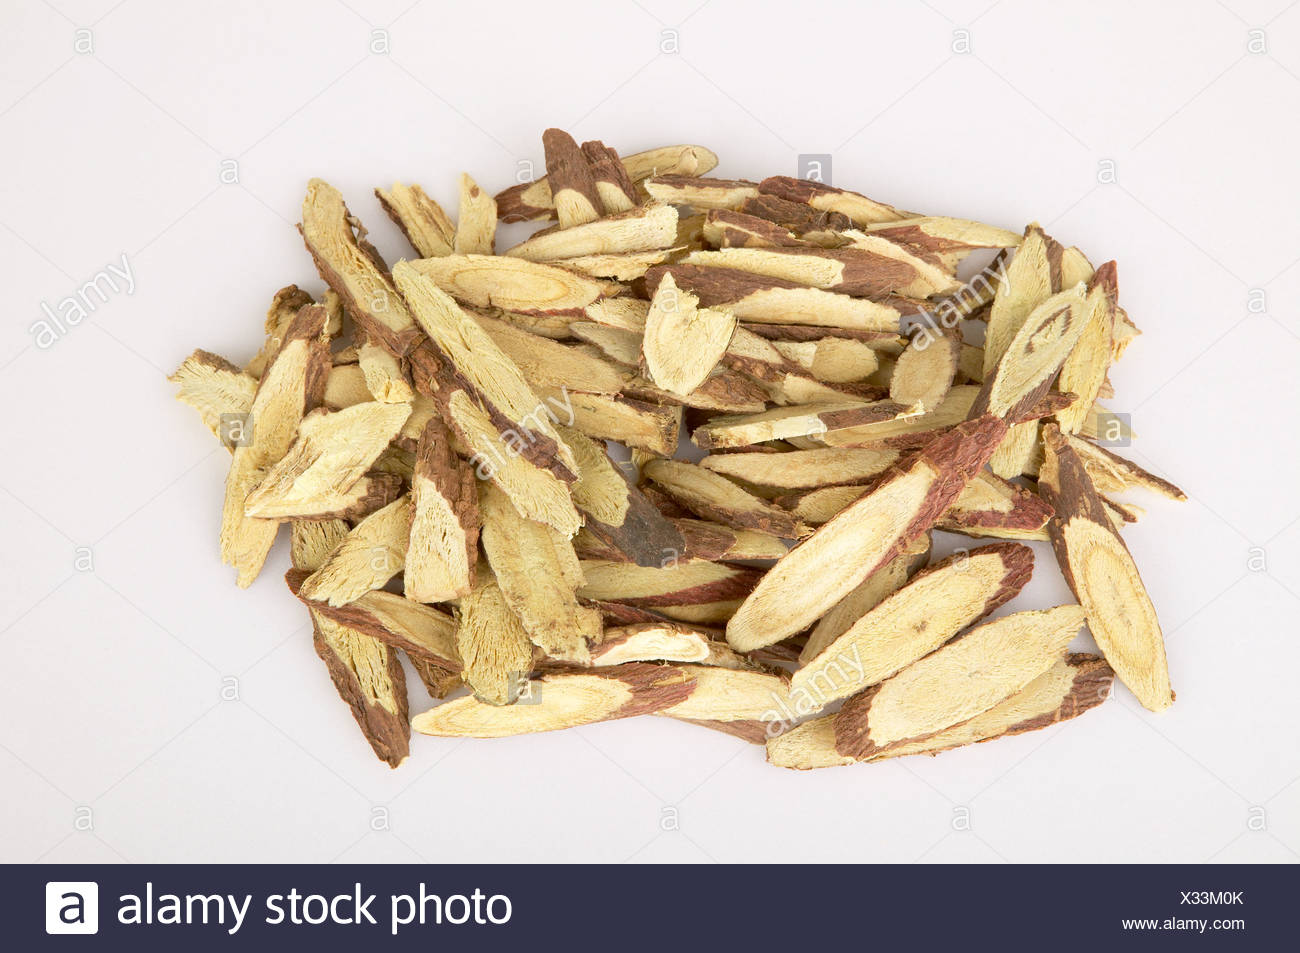 Dried licorice root - Stock Image